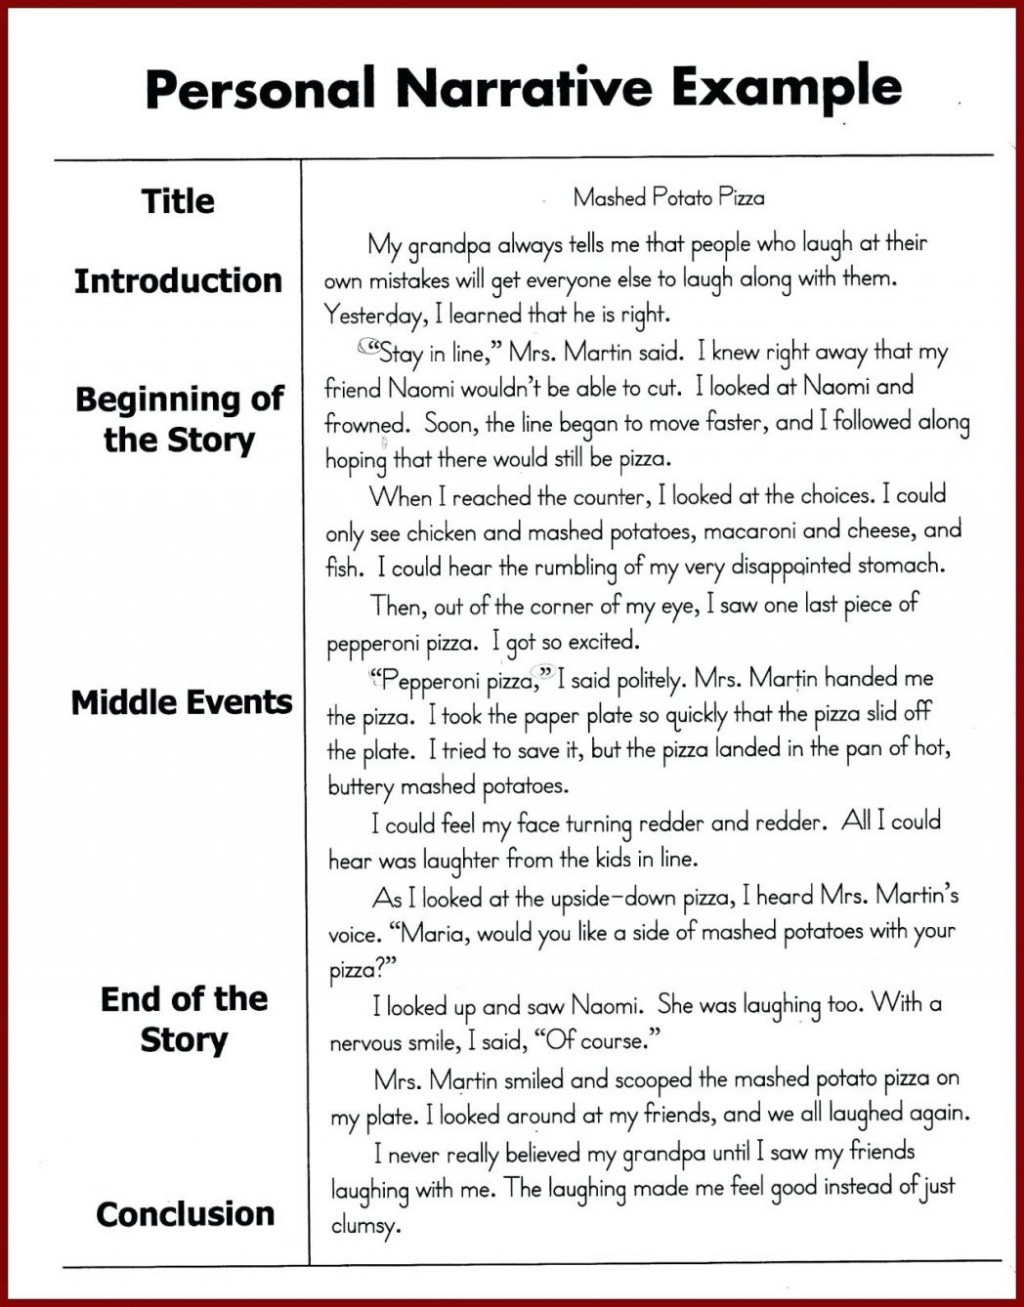 015 Autobiography Essay Example My Examples S Functis Bibliography Kindredsouls Us How To Write An For High School Autobiographical Examp Grad College Biography Unique Of About Yourself Tagalog Bio Students Large